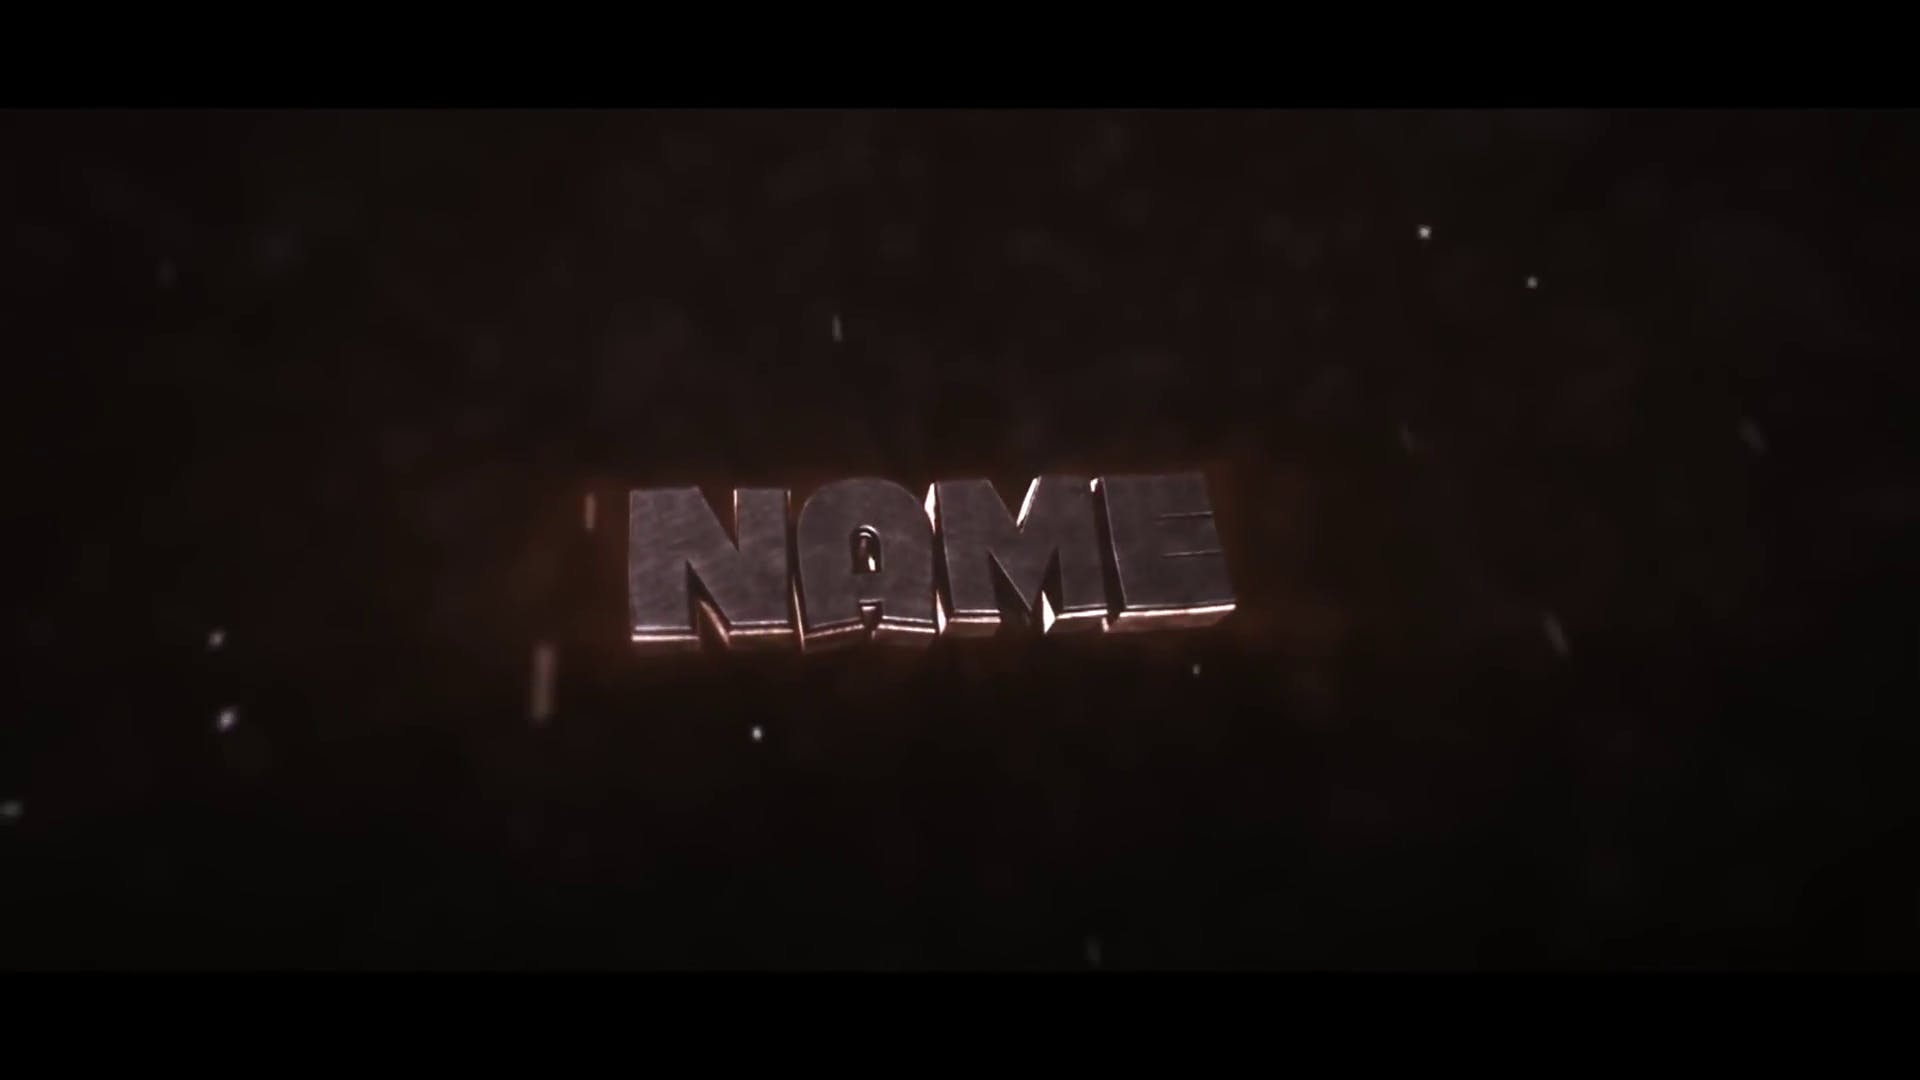 Brown Shake Cinema 4D After Effects Intro Template FREE DOWNLOAD